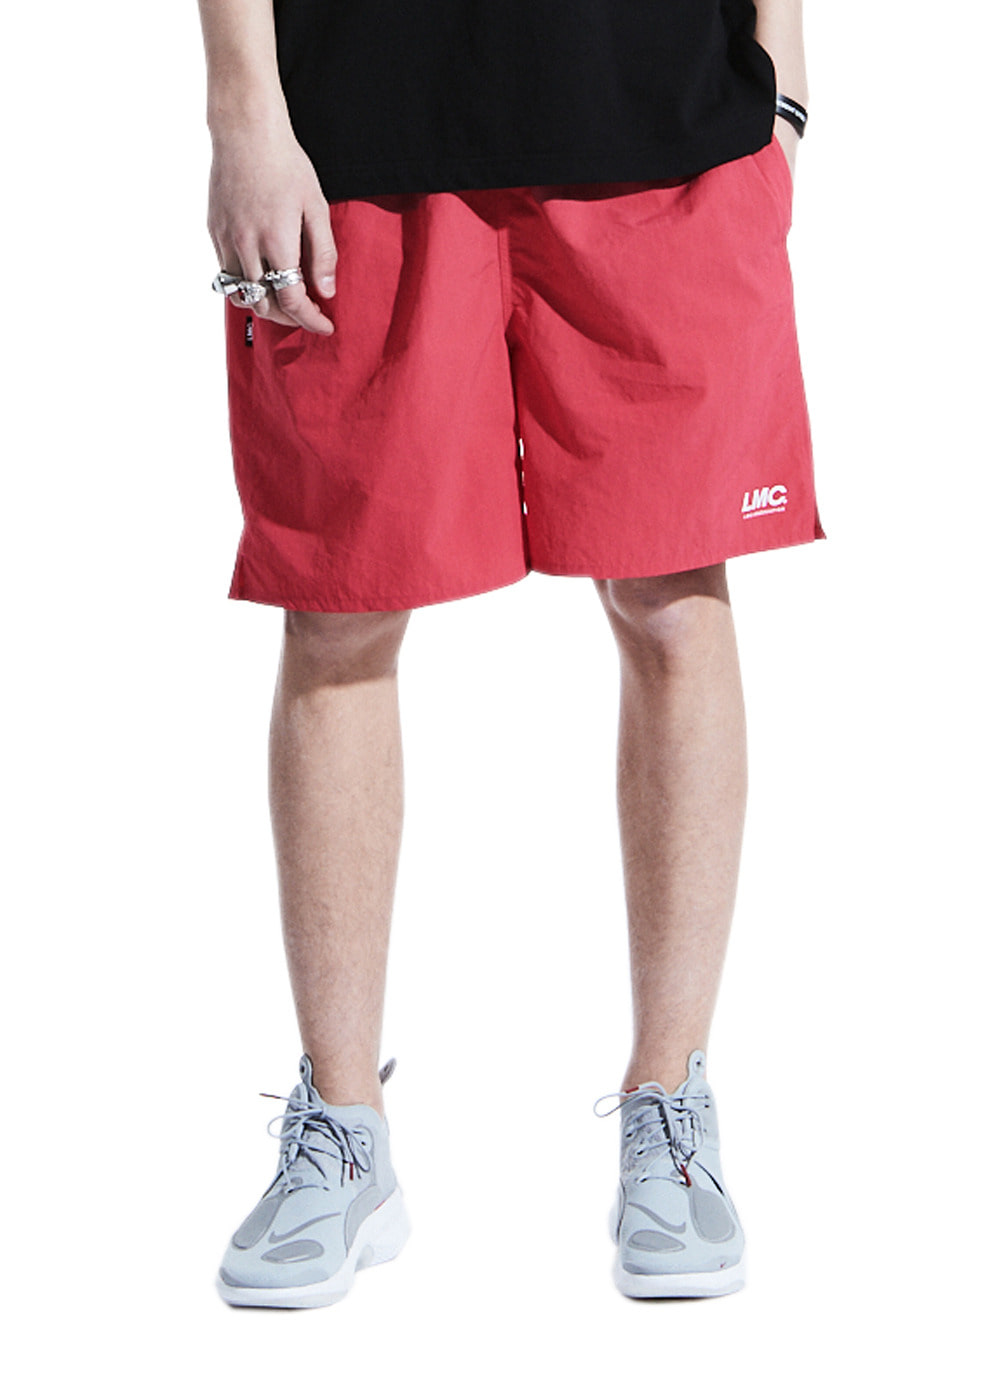 LMC ASSOCIATION TEAM SHORTS red